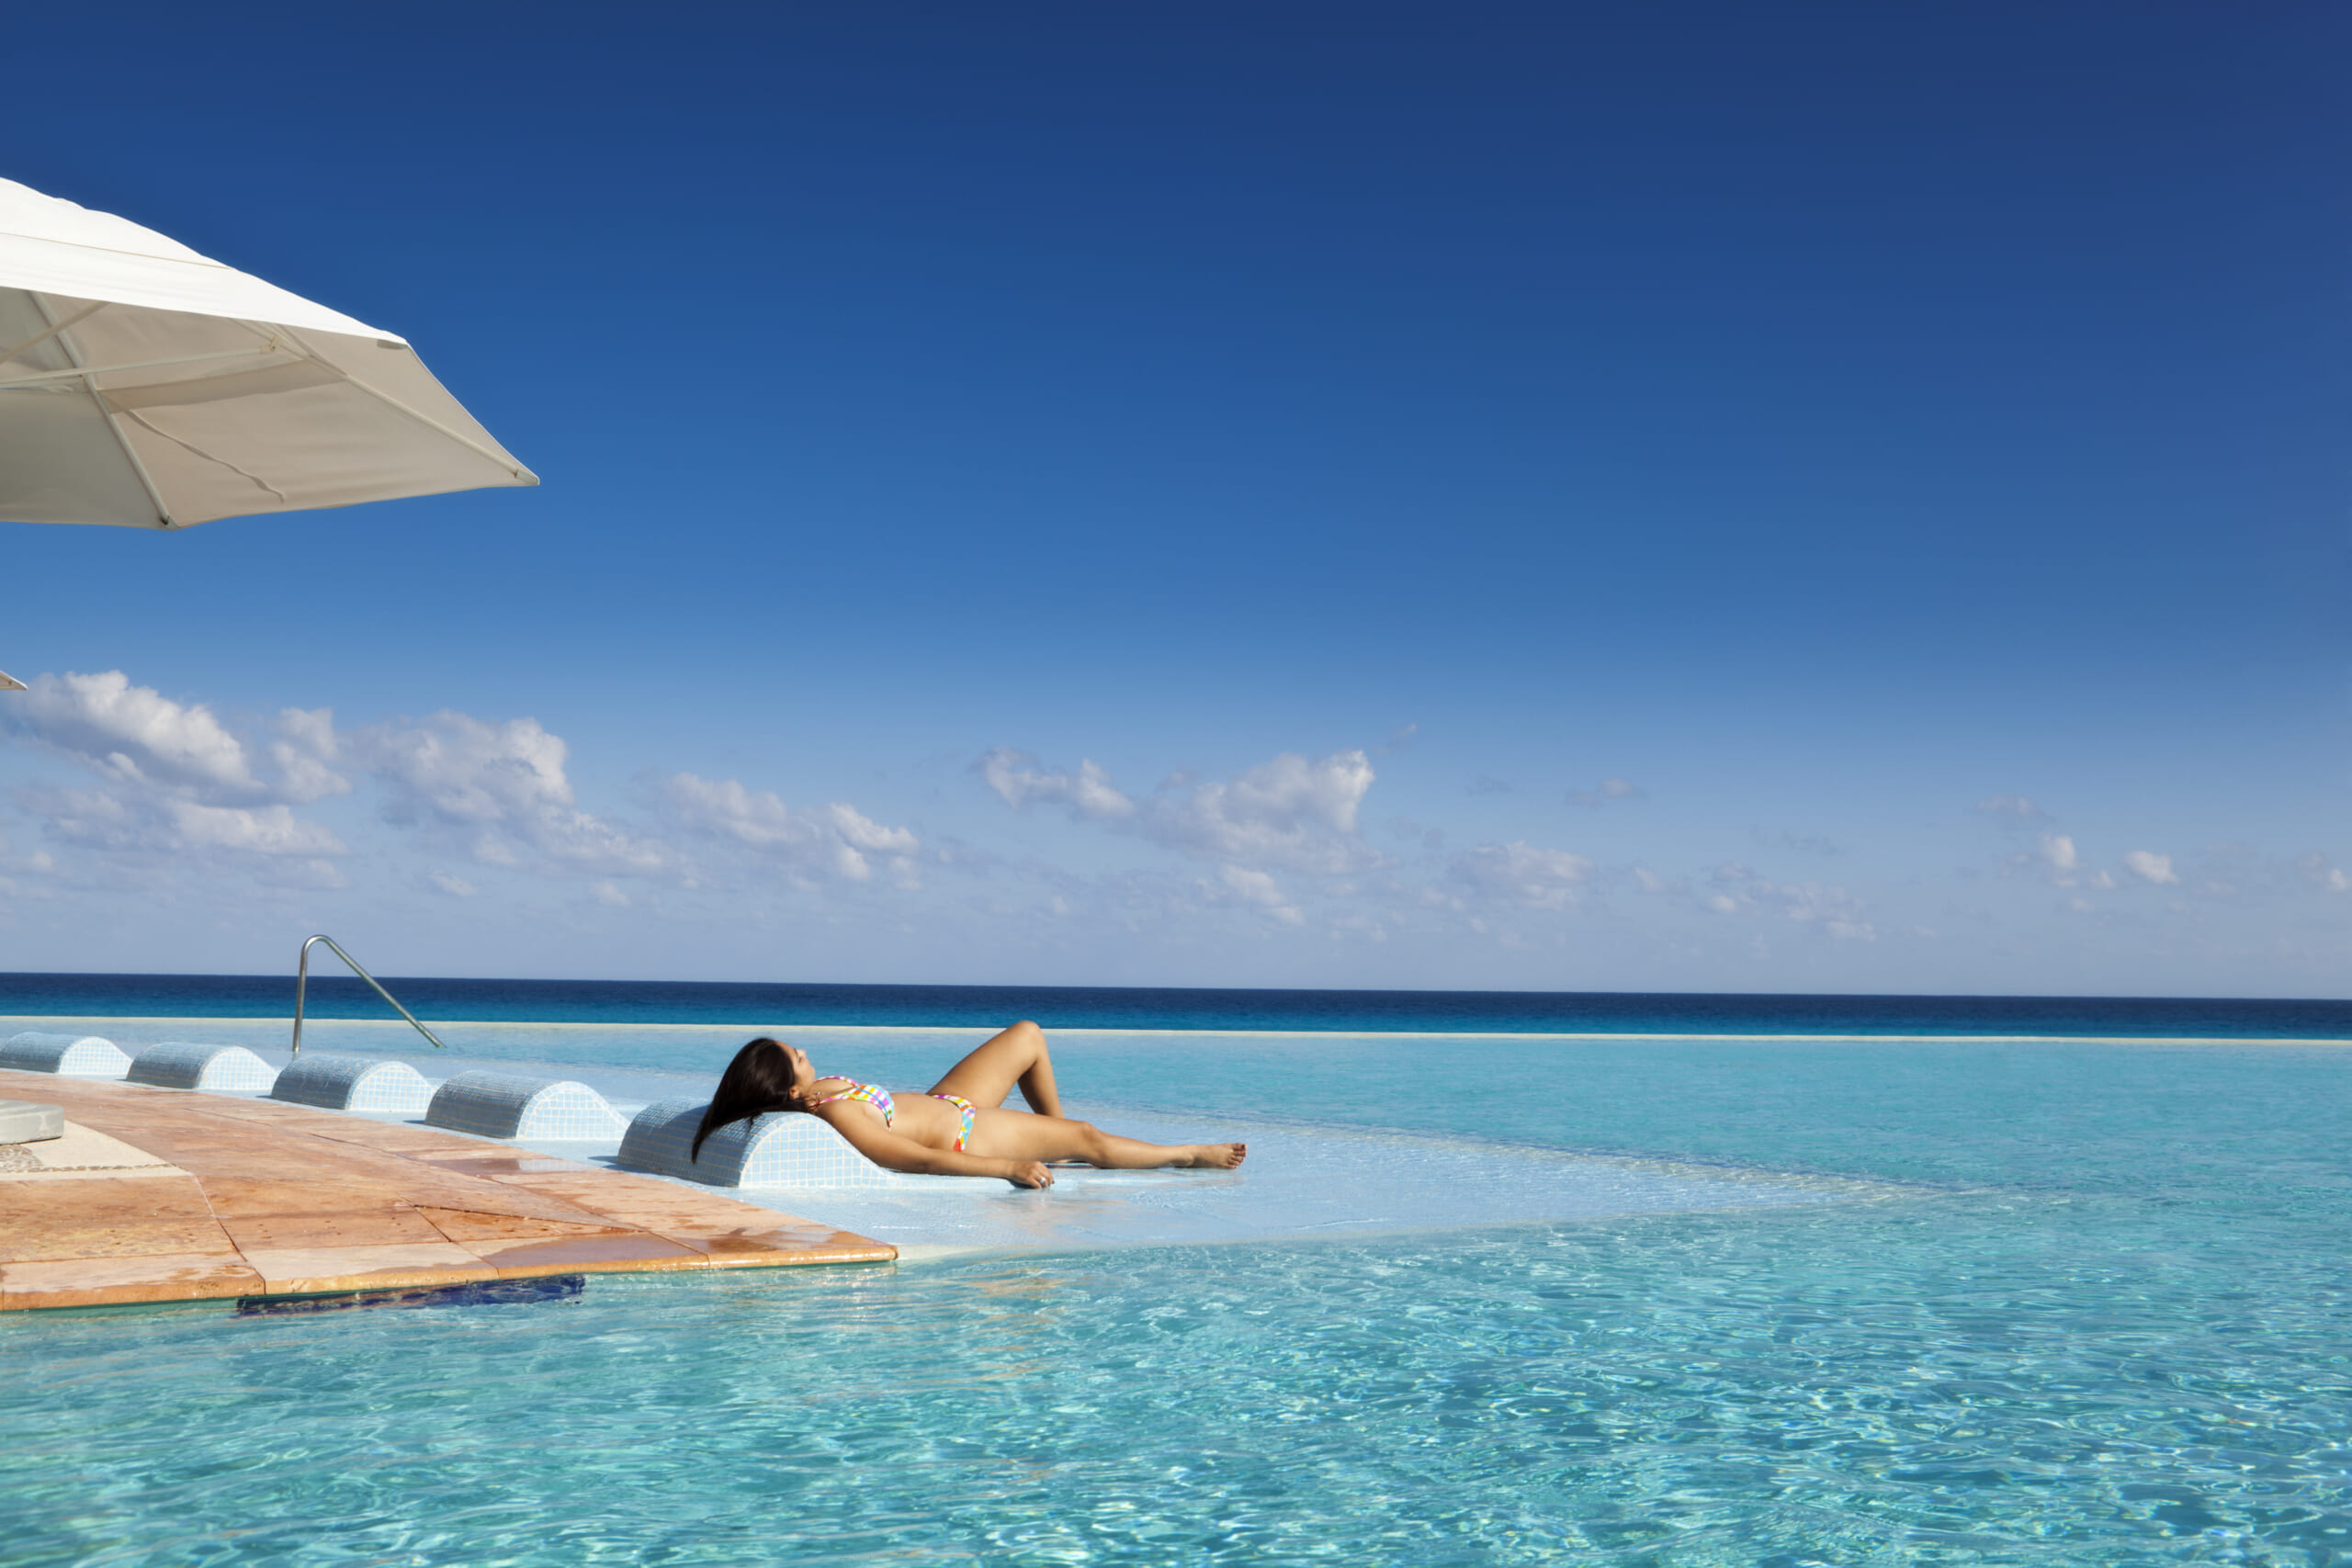 A young woman by a tropical beach resort hotel infinity pool on the Caribbean Sea, Cancun, Riviera Maya, Mexico.